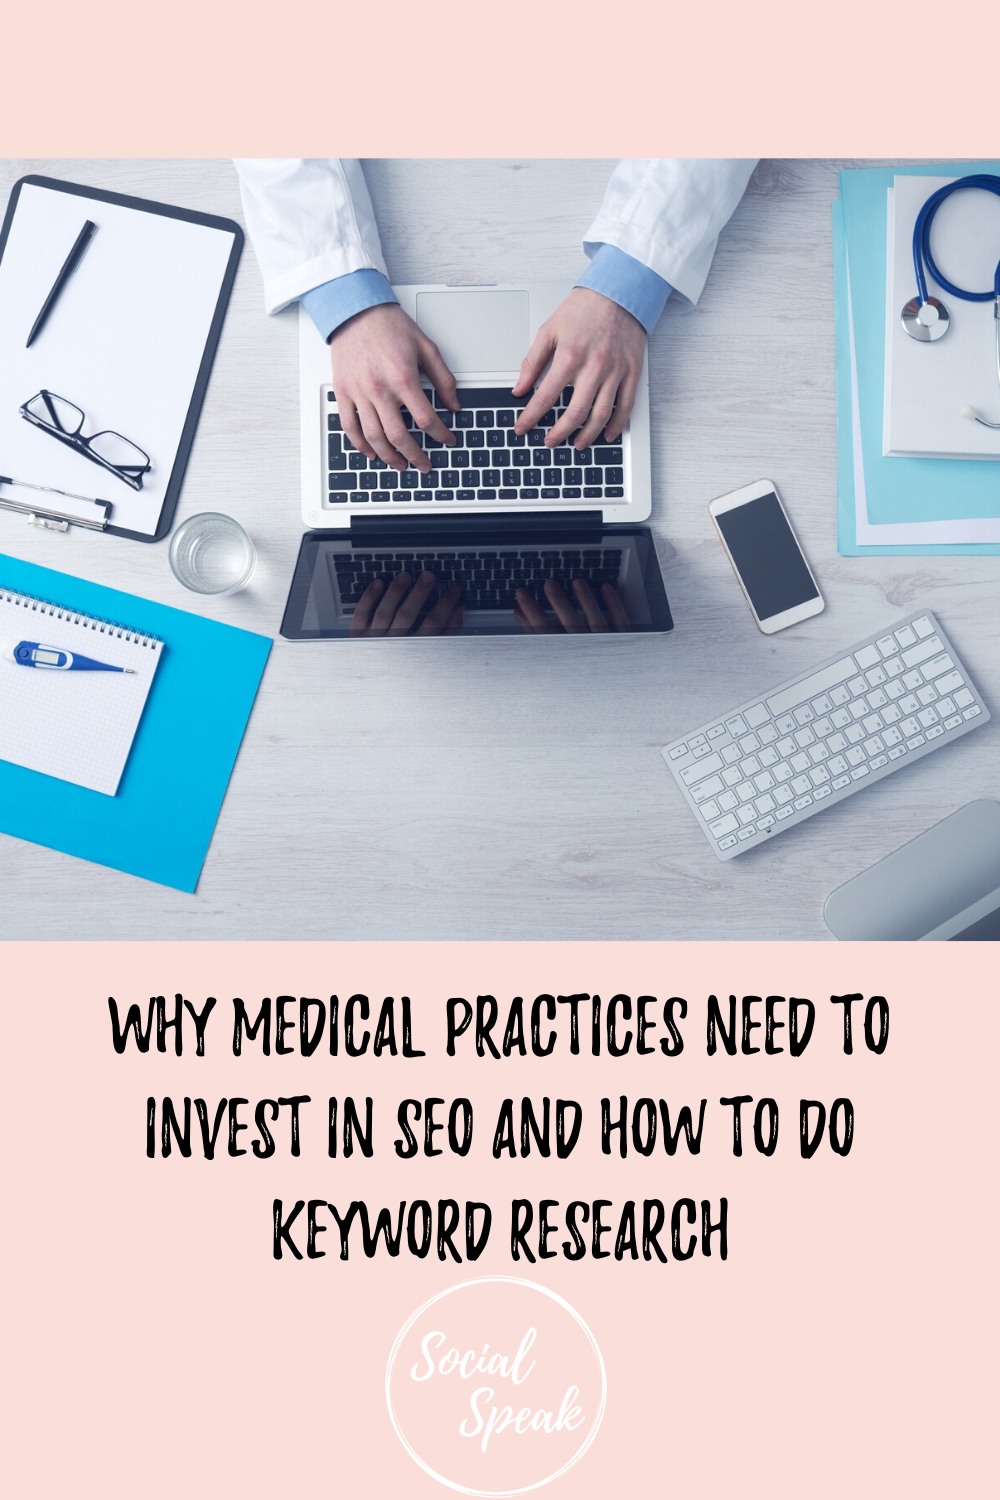 Why Medical Practices Need to Invest in SEO and How to do Keyword Research